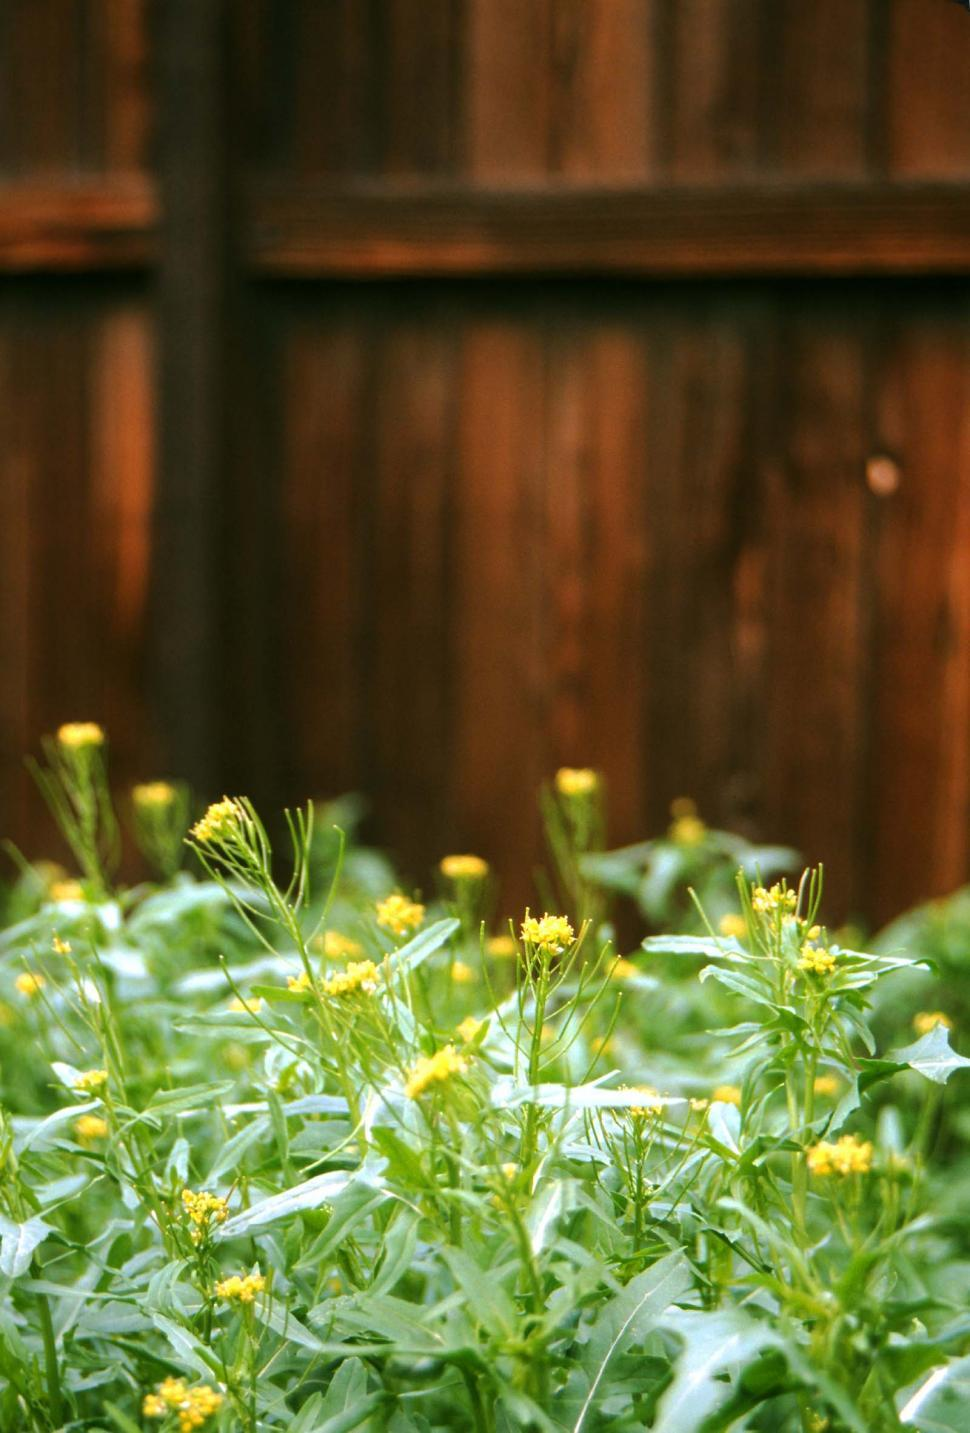 Download Free Stock HD Photo of Weeds and wooden fence Online